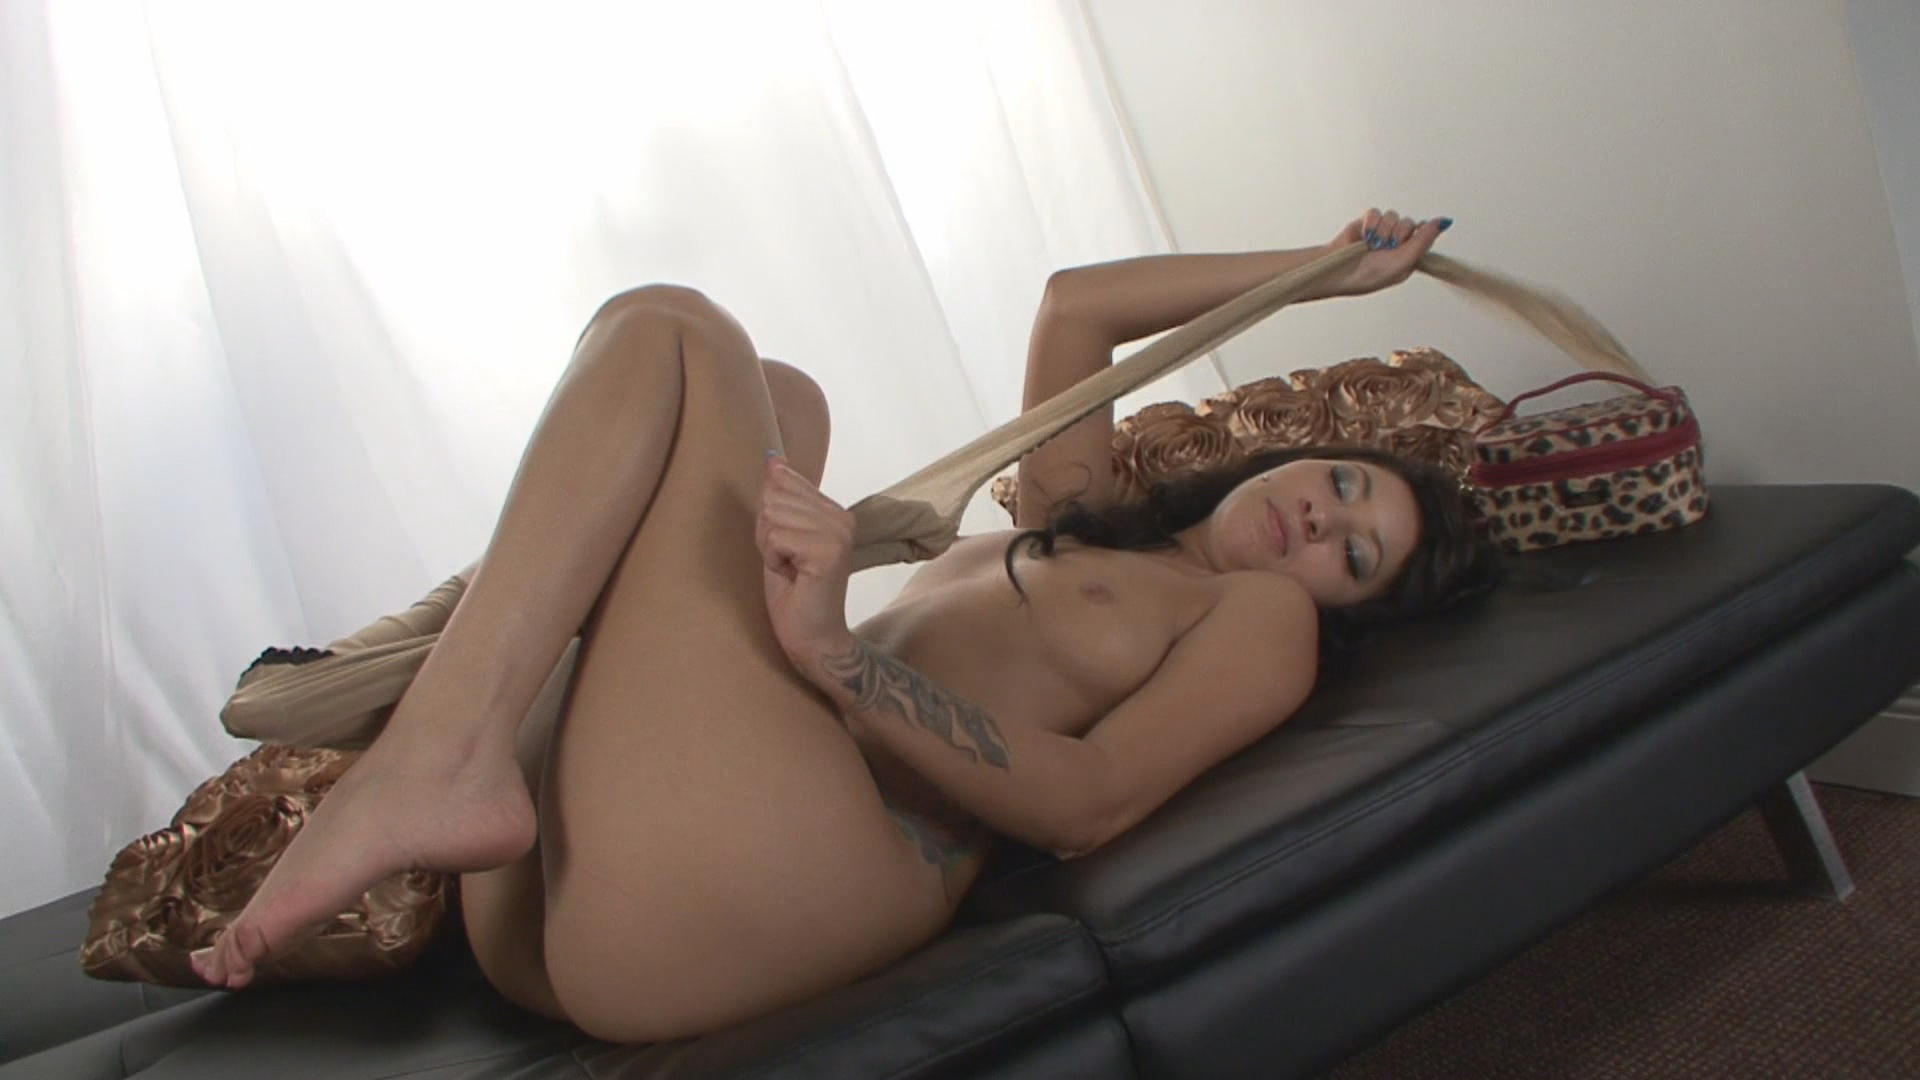 Pantyhose Creep 12 xvideos